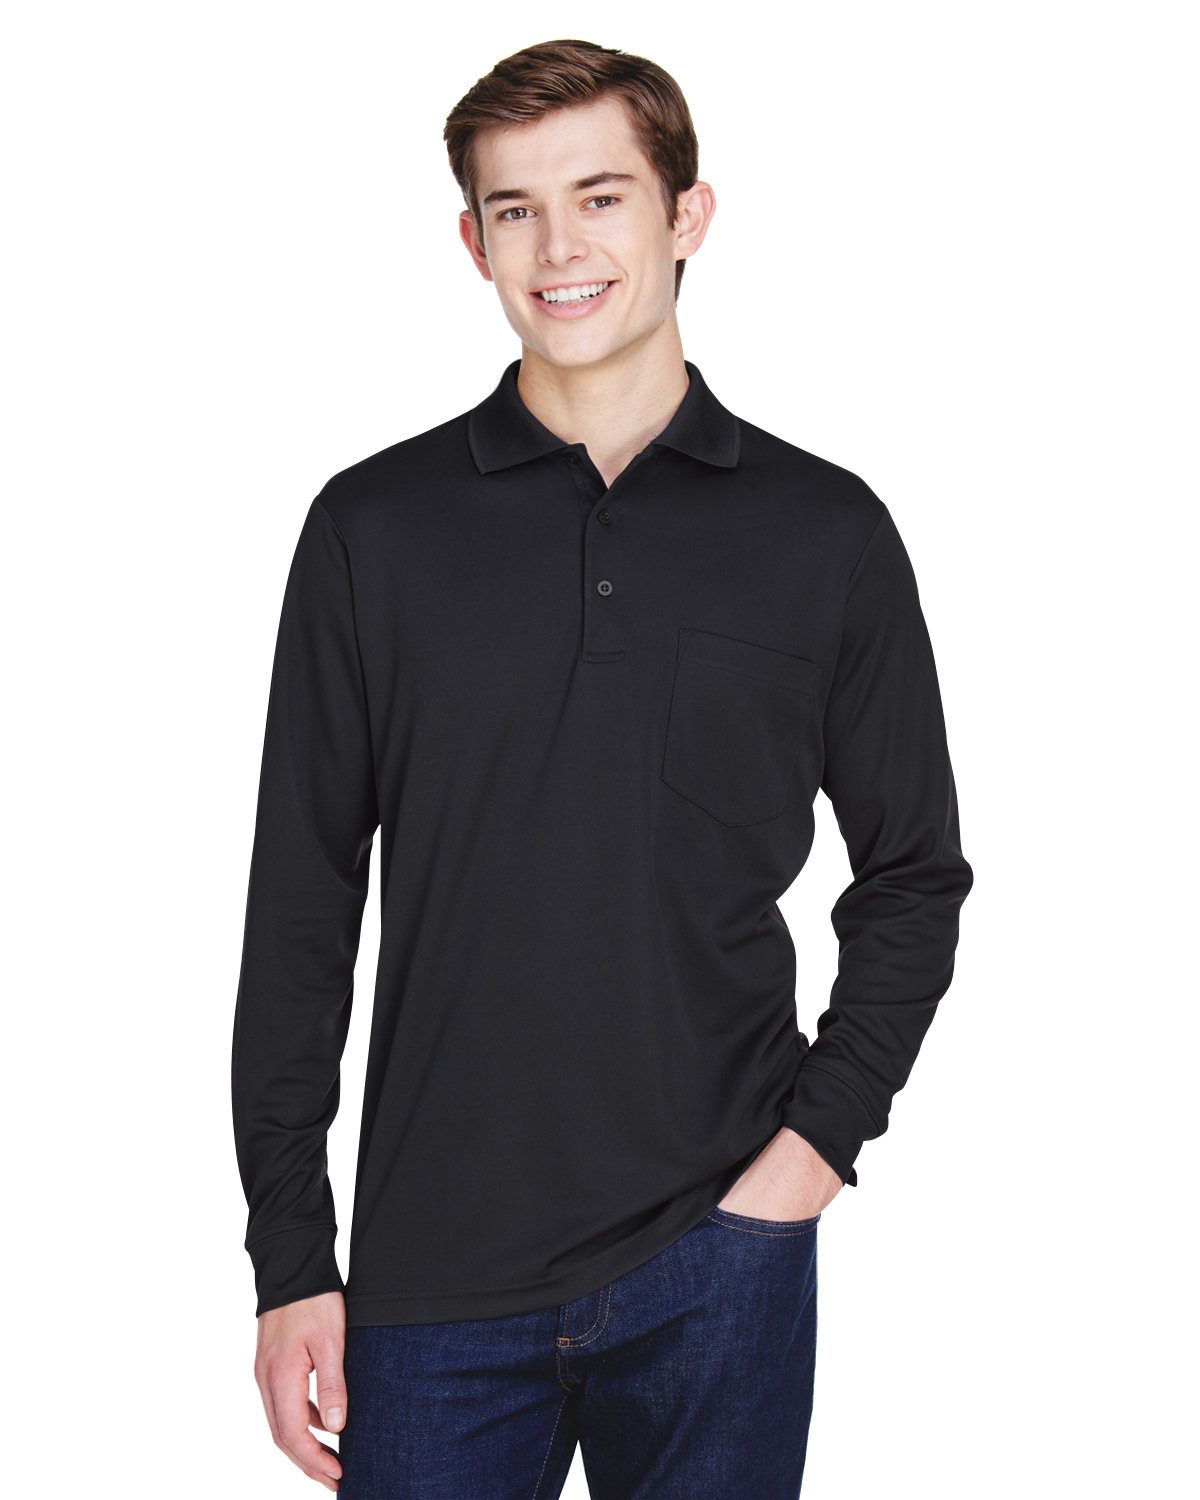 Core 365 Adult Pinnacle Performance Long-Sleeve Piqué Polo with Pocket BLACK